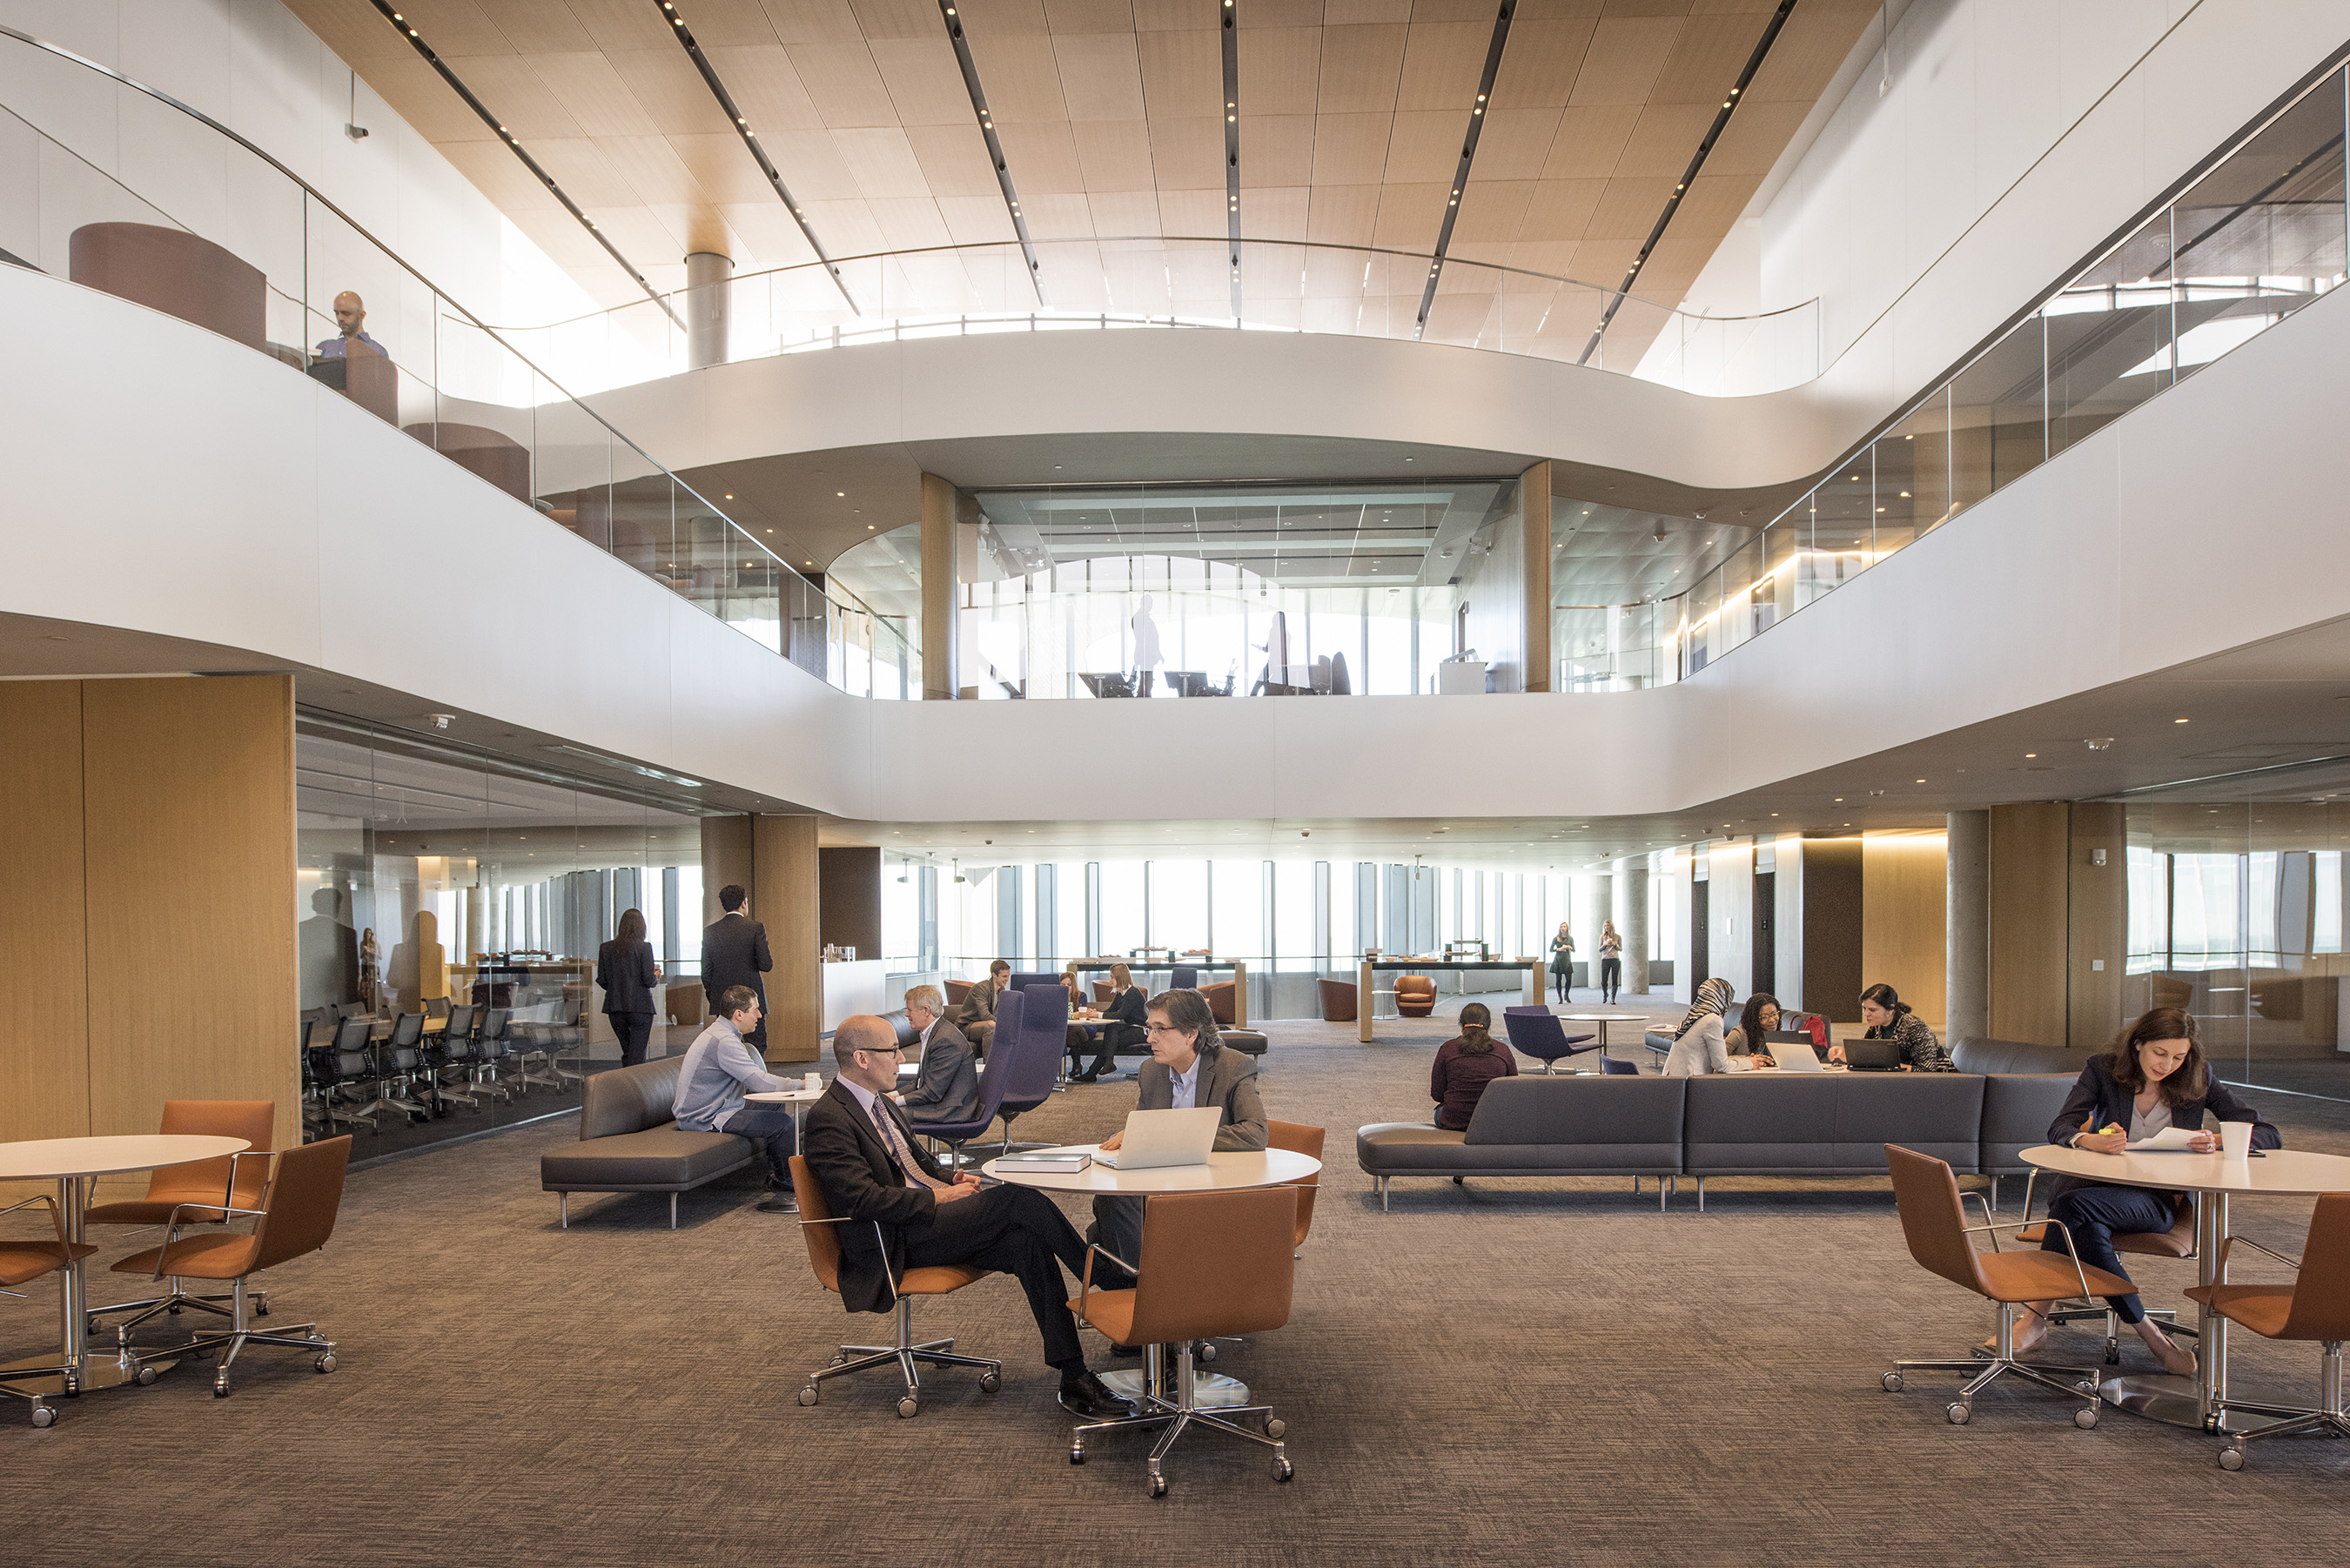 The Faculty Summit features two-story atrium and is designed to encourage partnership between faculty from various disciplines.